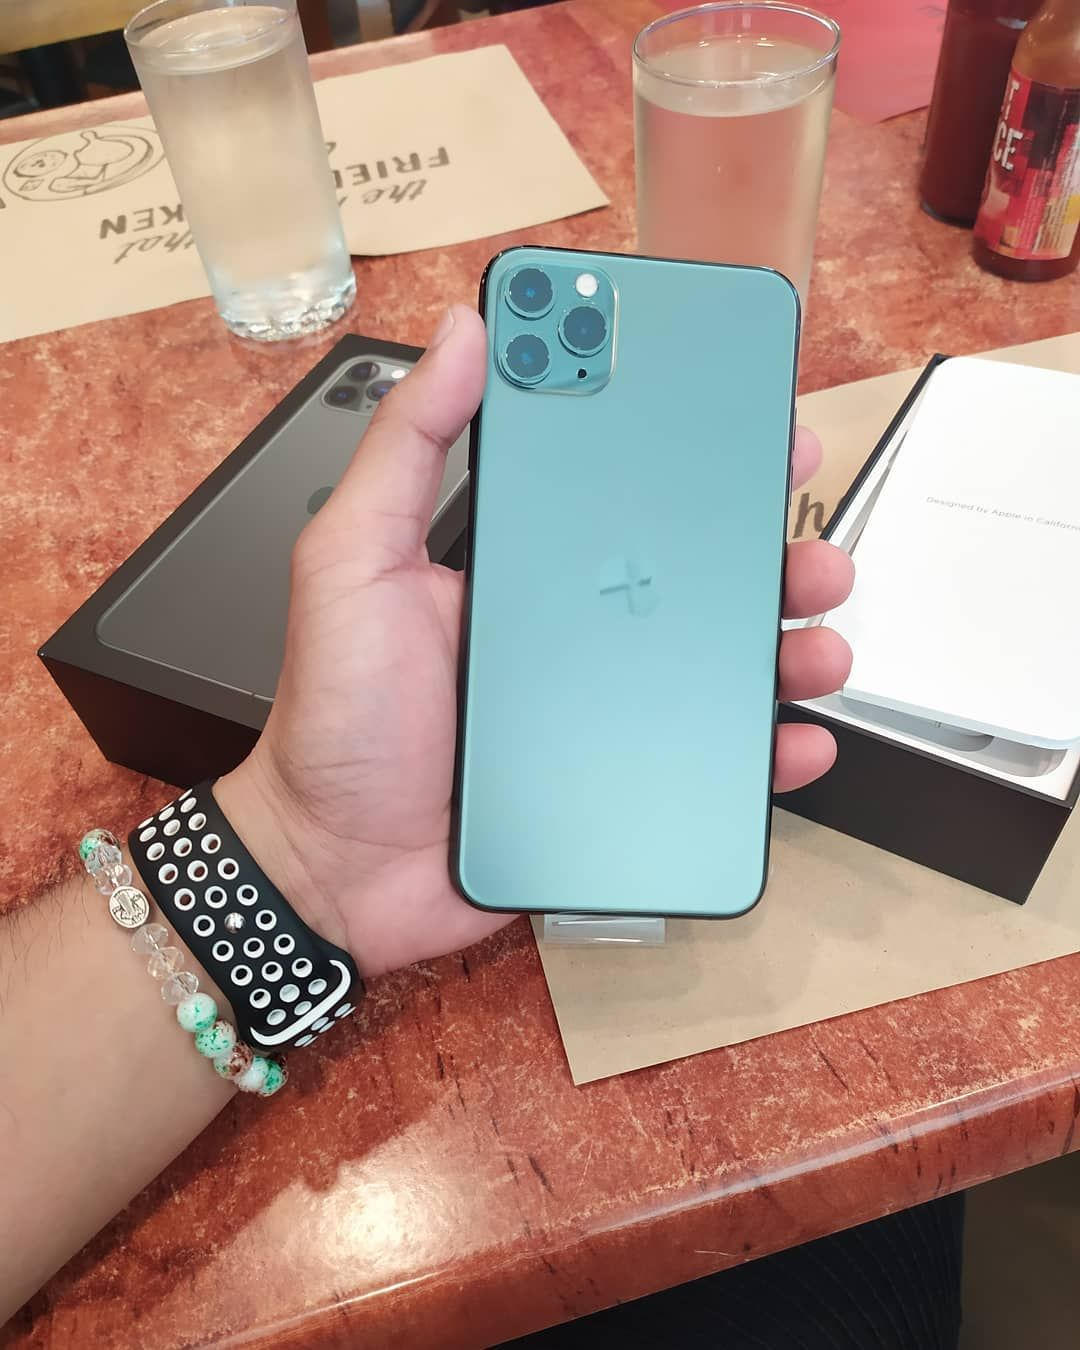 Iphone11 Iphonexsmax Apple Appleiphone Airpods Shoppingonline Teamiphone Iphonecase Tech Luxurywatch Appleproducts Iphone8 Iphonex